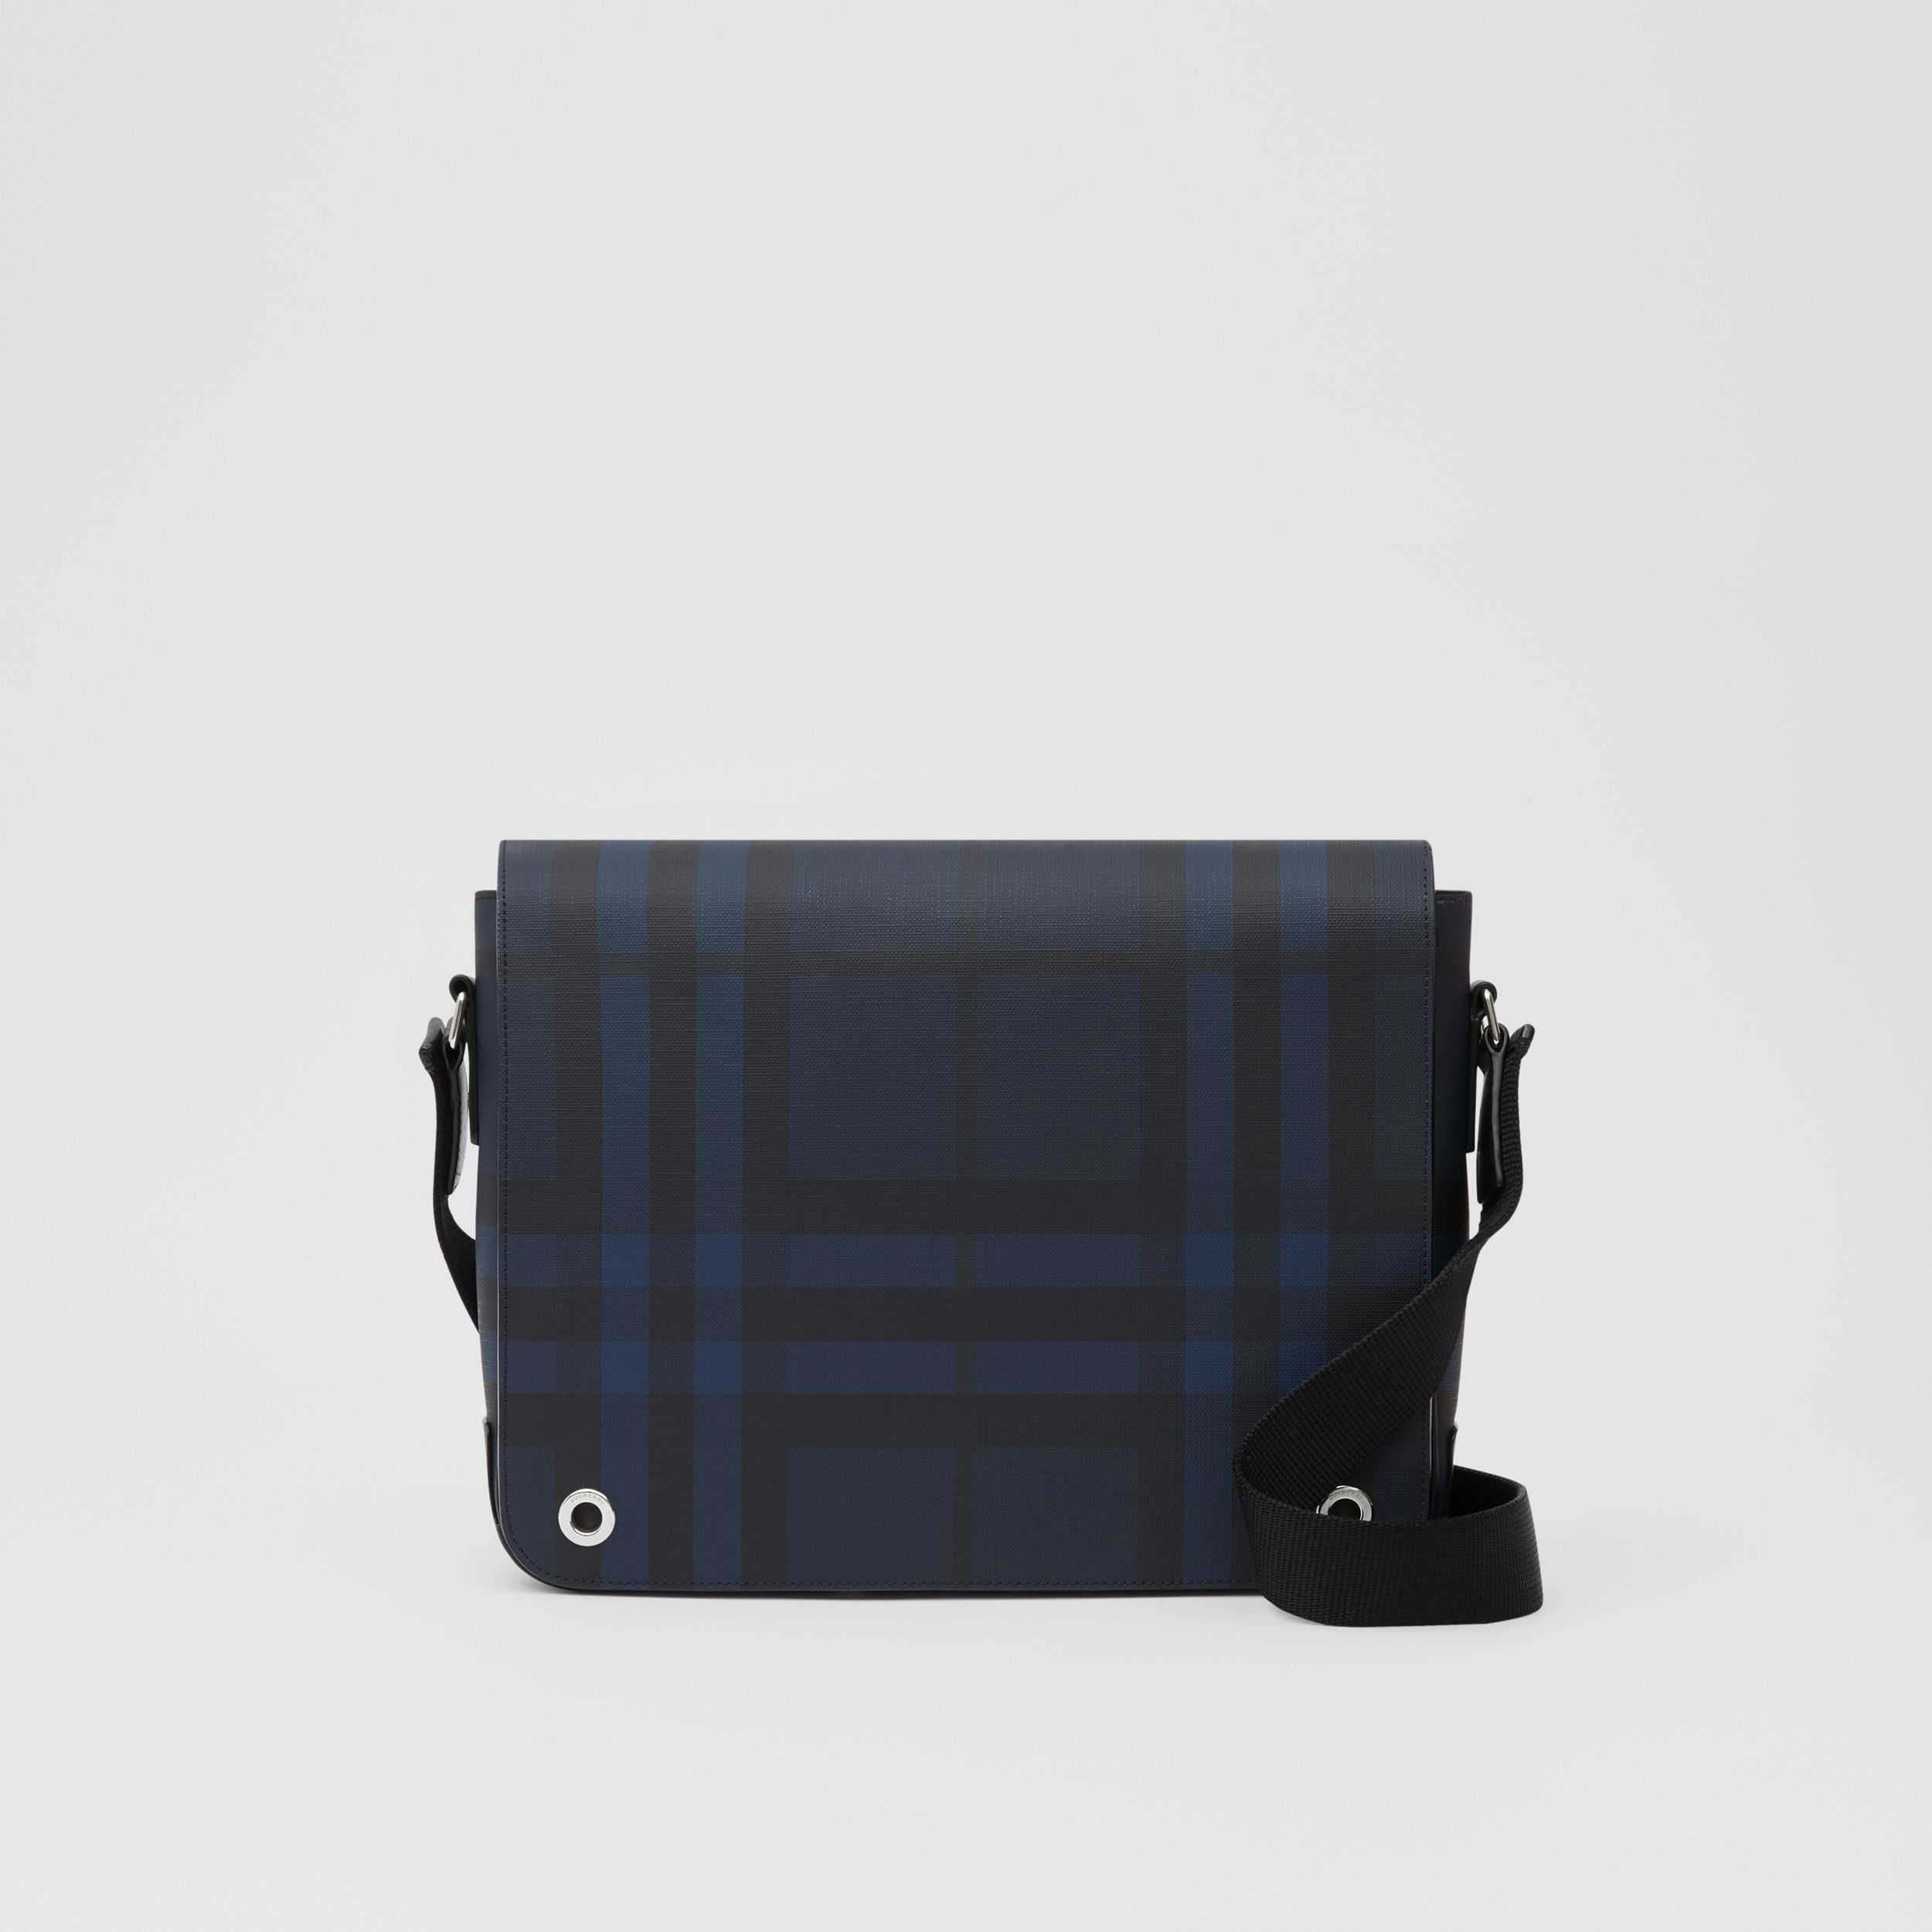 Cartella a tracolla con motivo London check e finiture in pelle (Navy) - Uomo | Burberry - 1